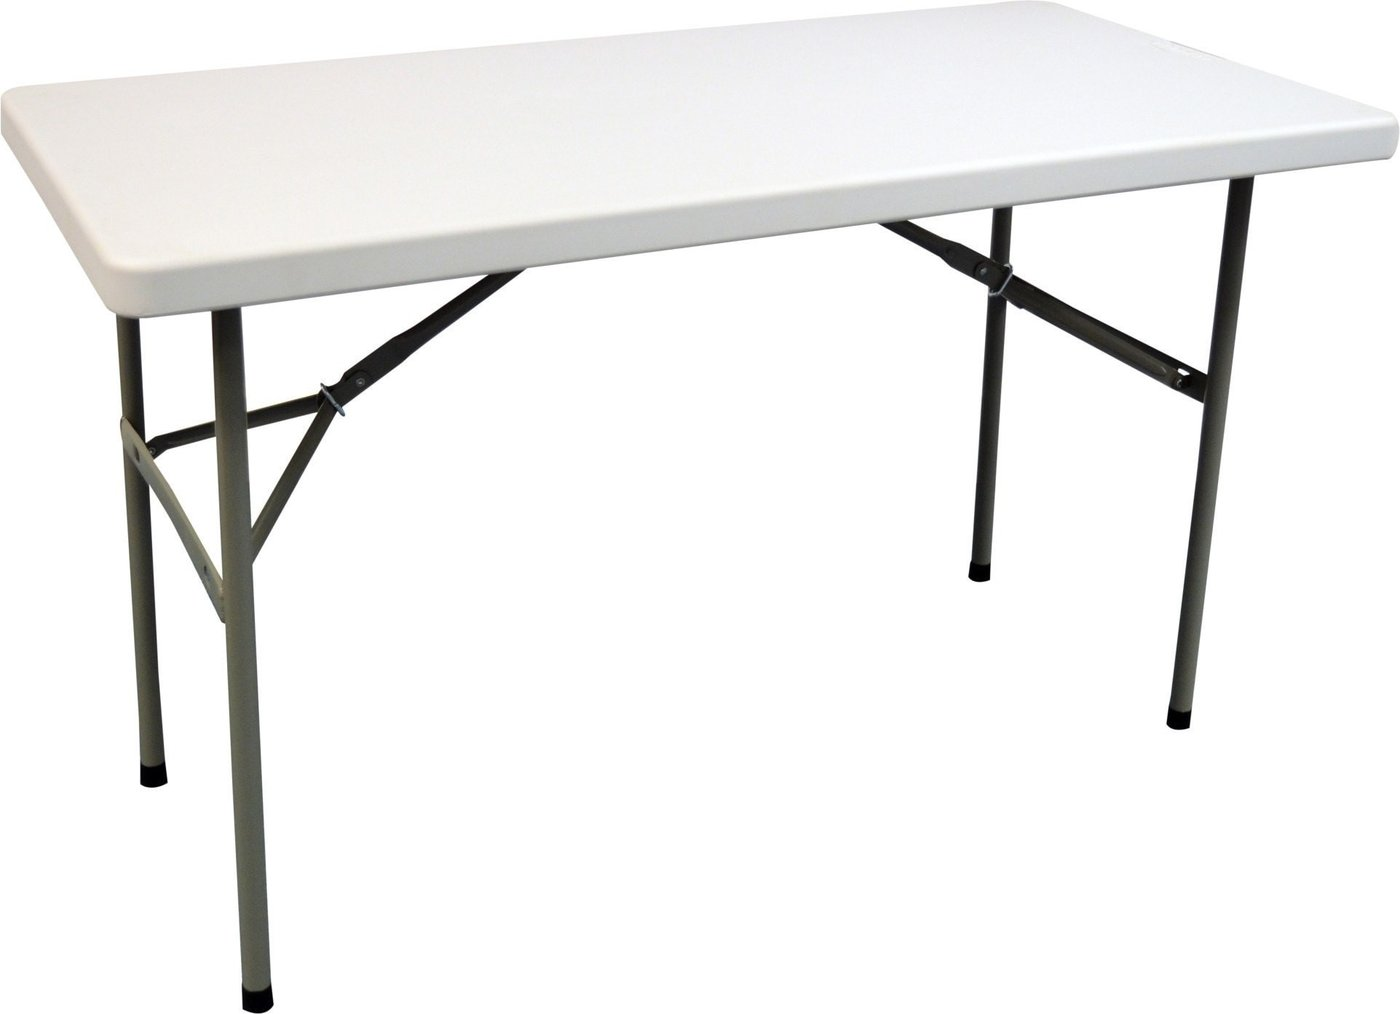 Foldable Table Small | Folding Tables At Costco | Costco Folding Tables